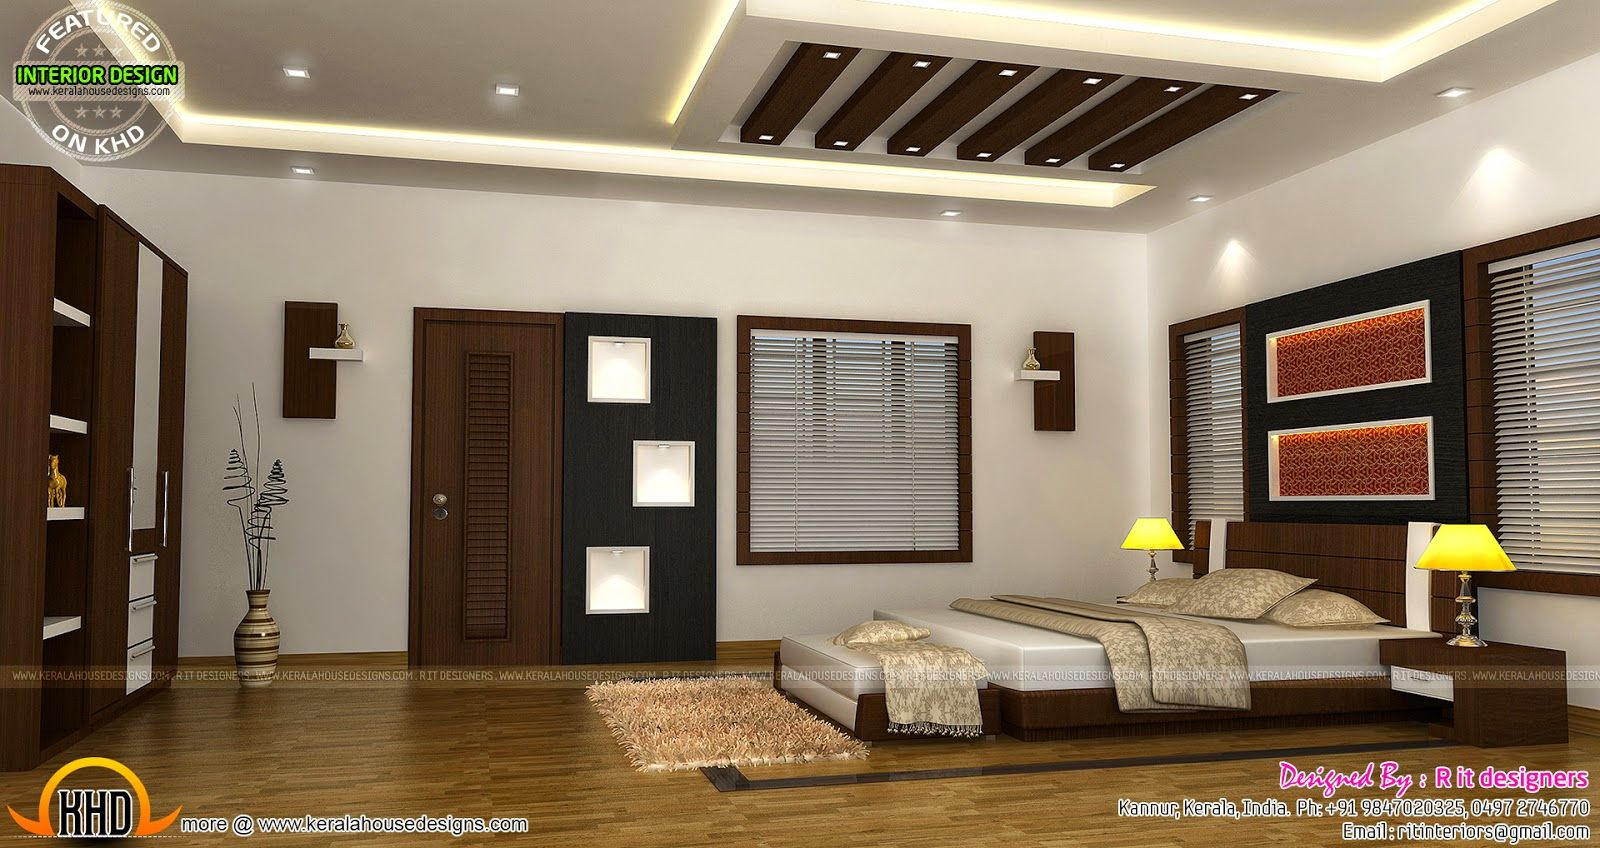 Kerala Home Interior Design Photos Middle Class With Images